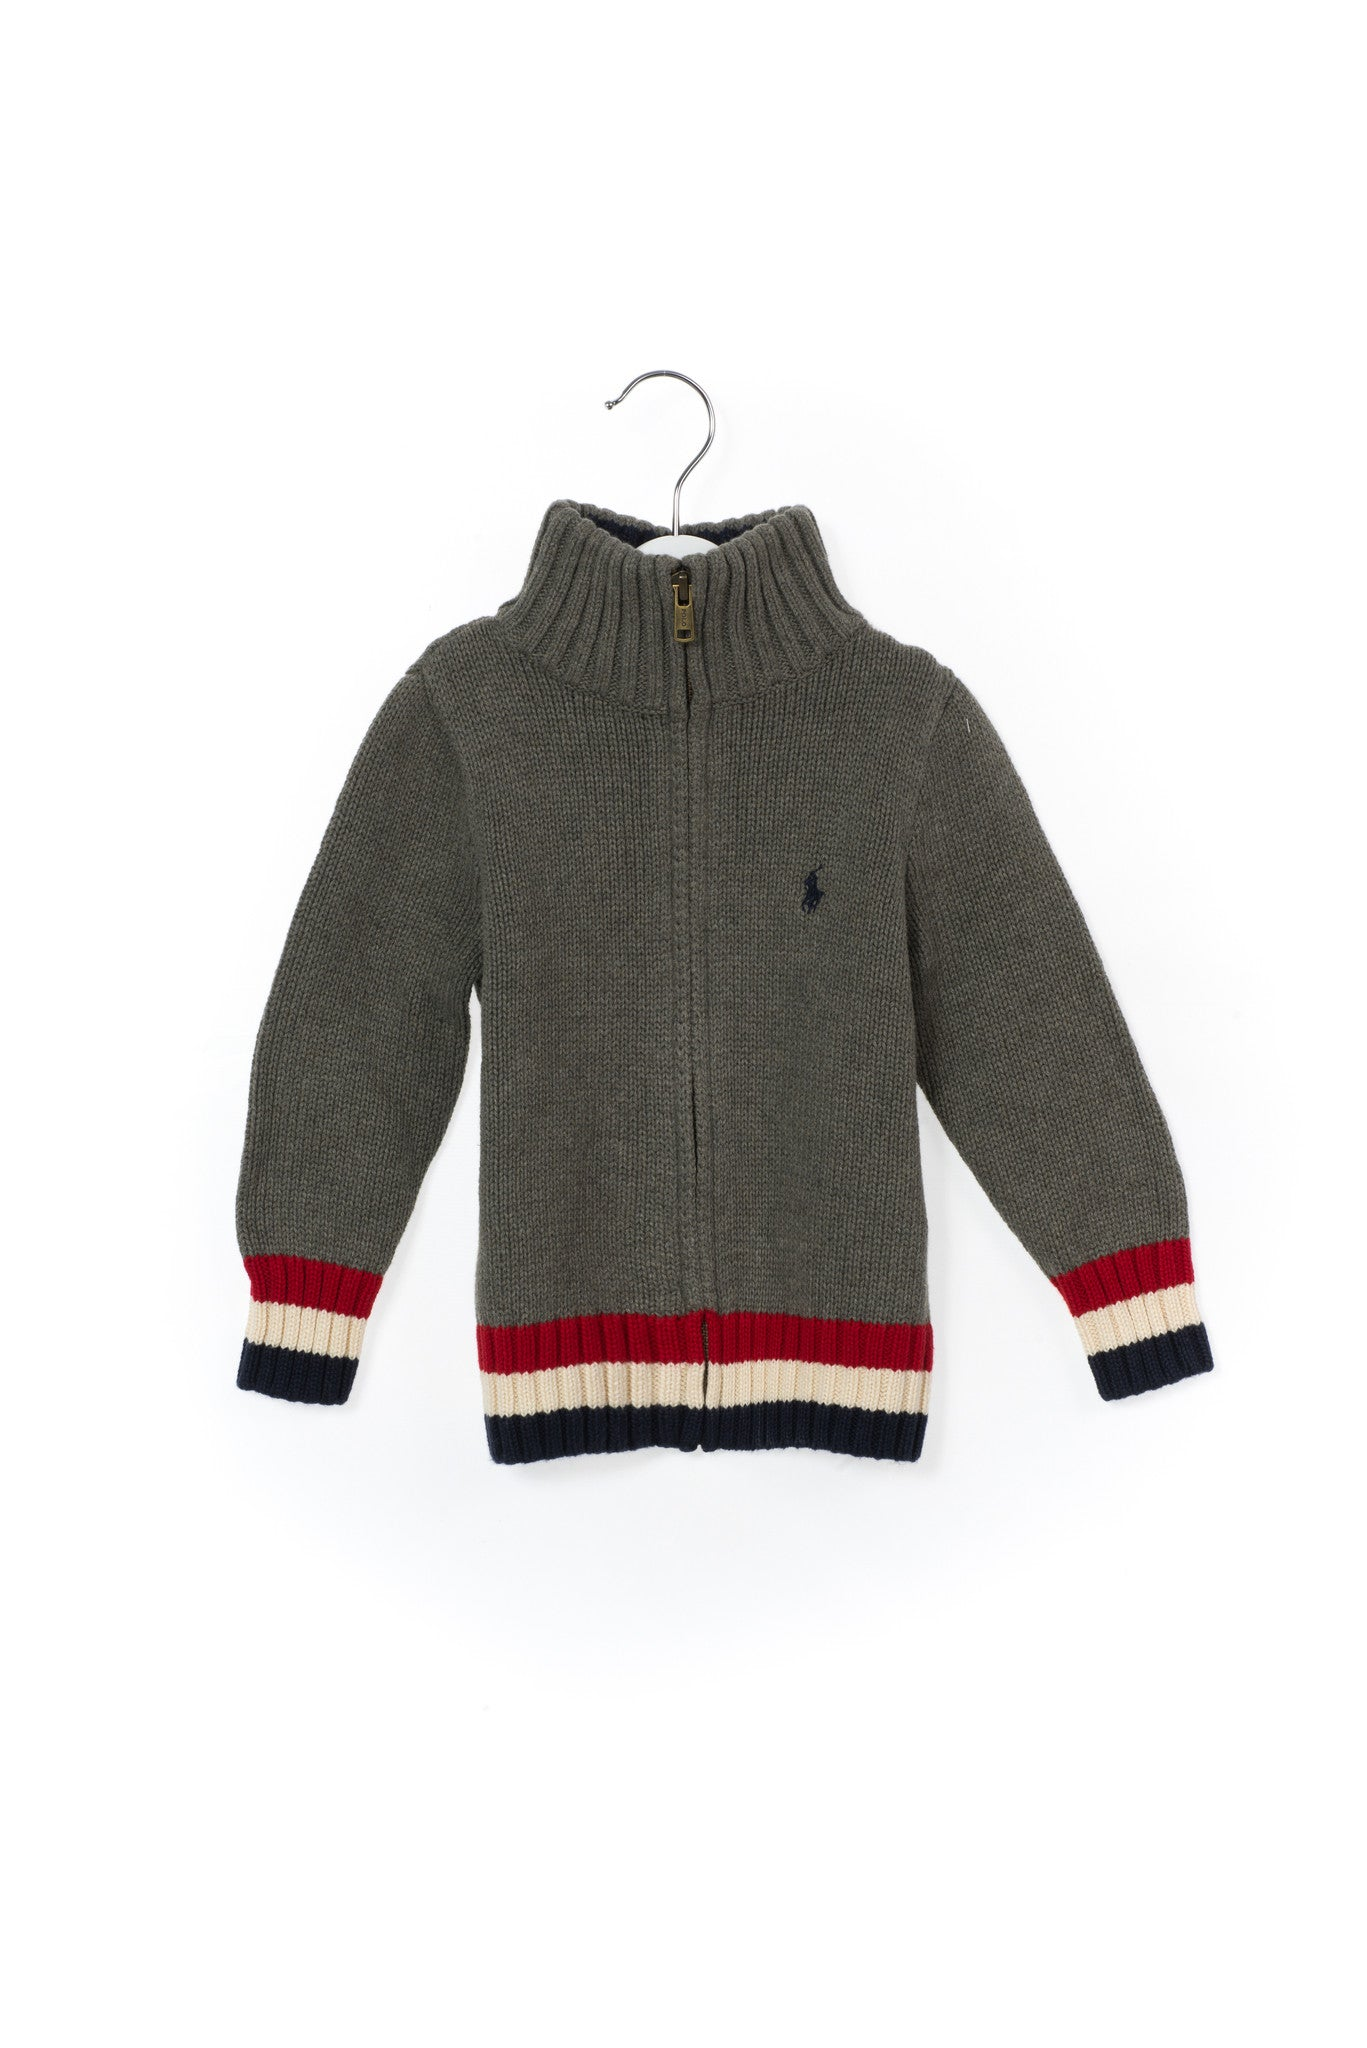 Cardigan 3T, Polo Ralph Lauren at Retykle - Online Baby & Kids Clothing Up to 90% Off